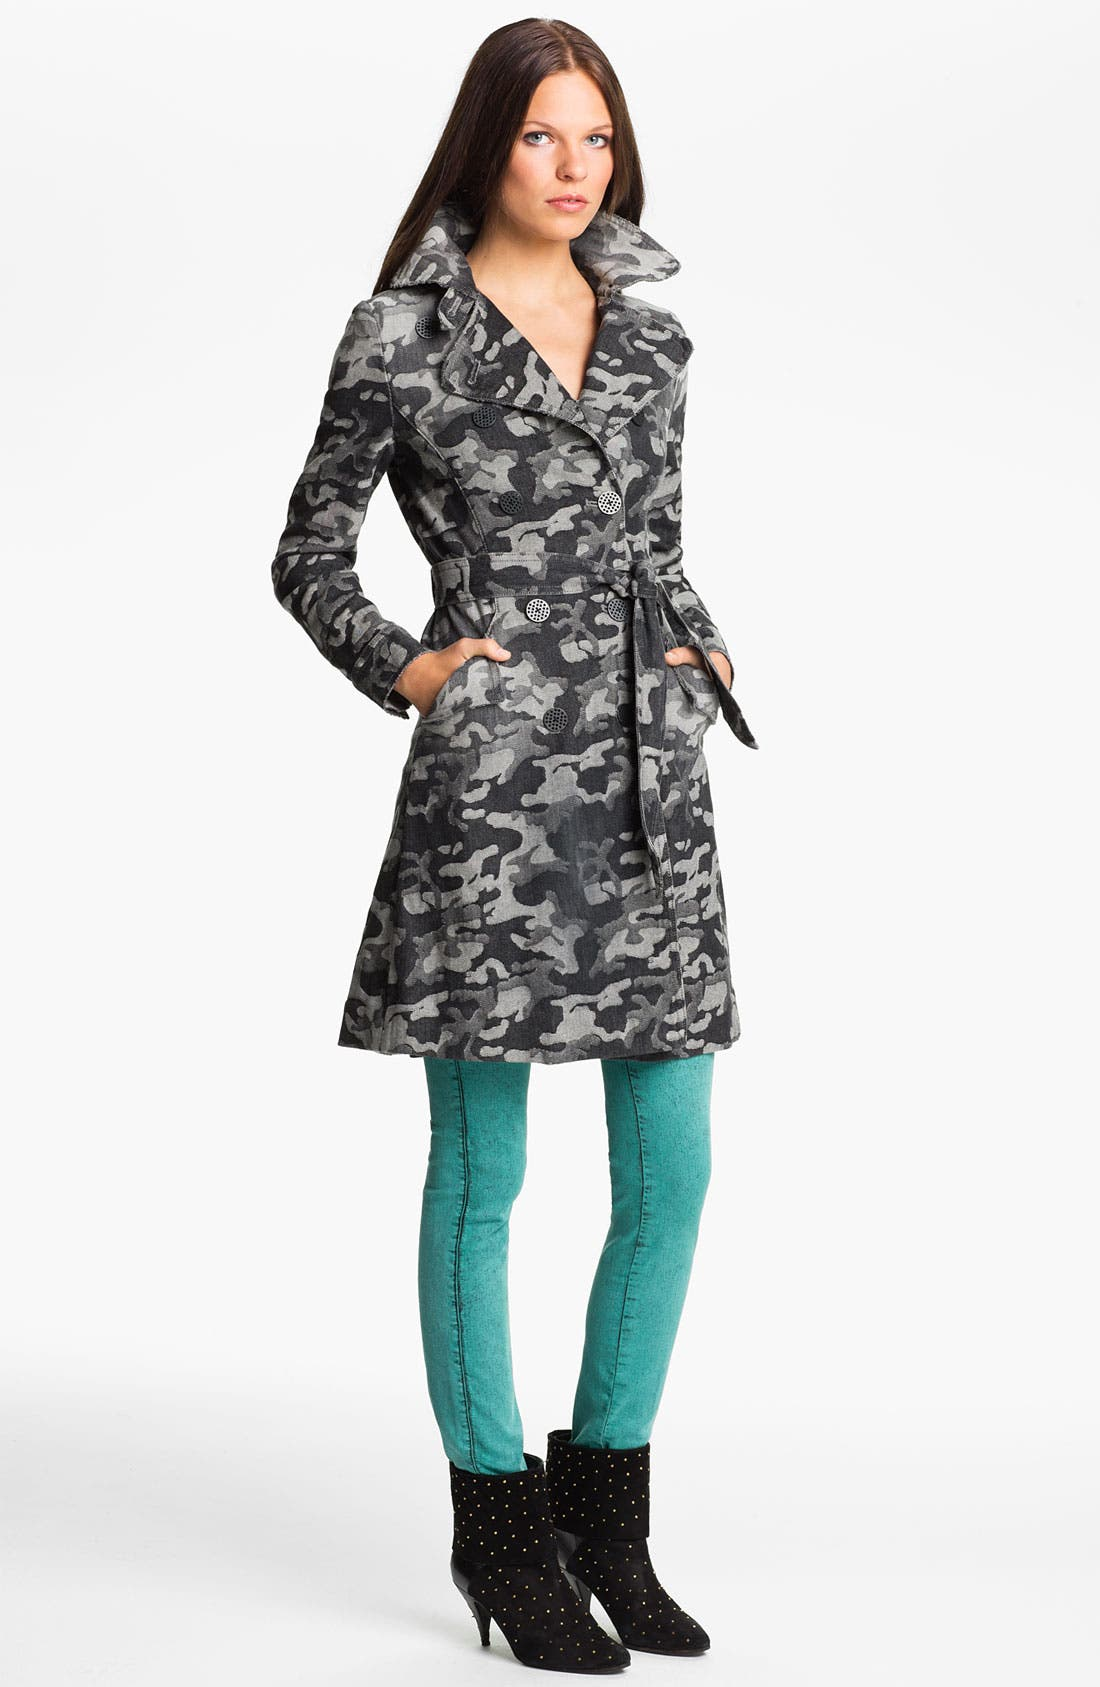 Main Image - Kelly Wearstler 'Chameleon' Camo Print Trench Coat